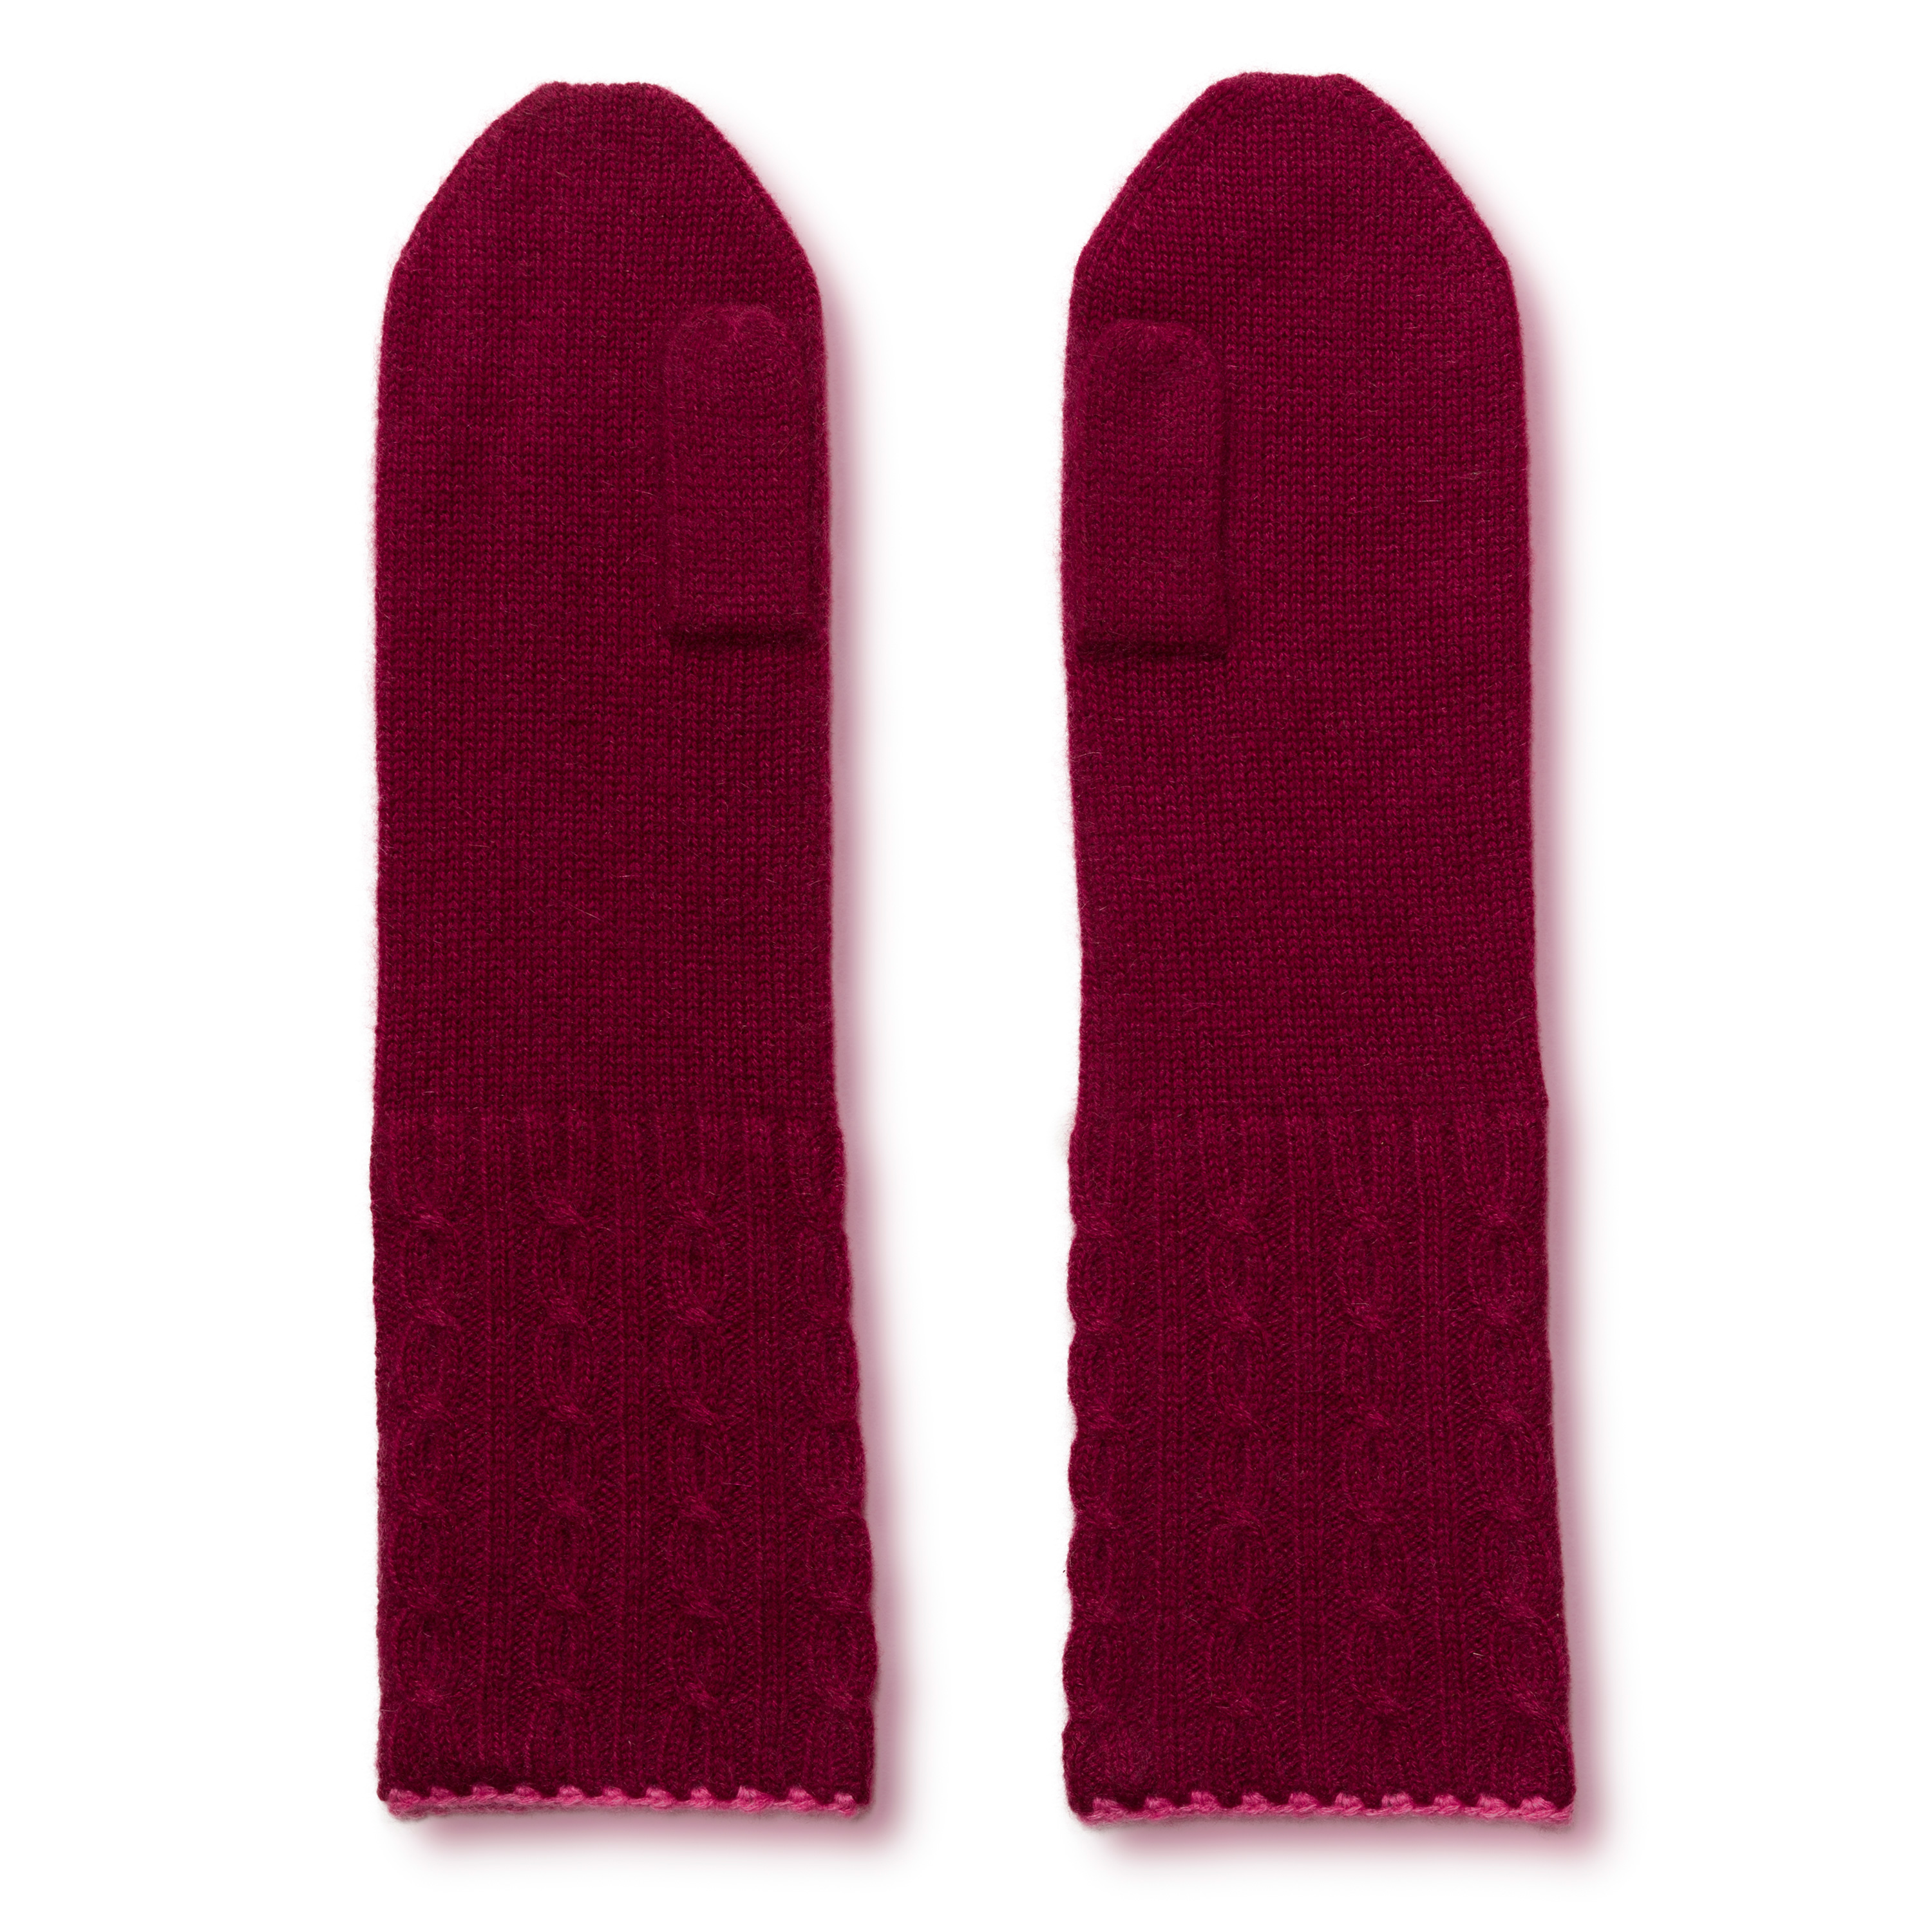 Cable Twist Mittens - 100% Cashmere - Rhododendron mp27 / Carmine mp32